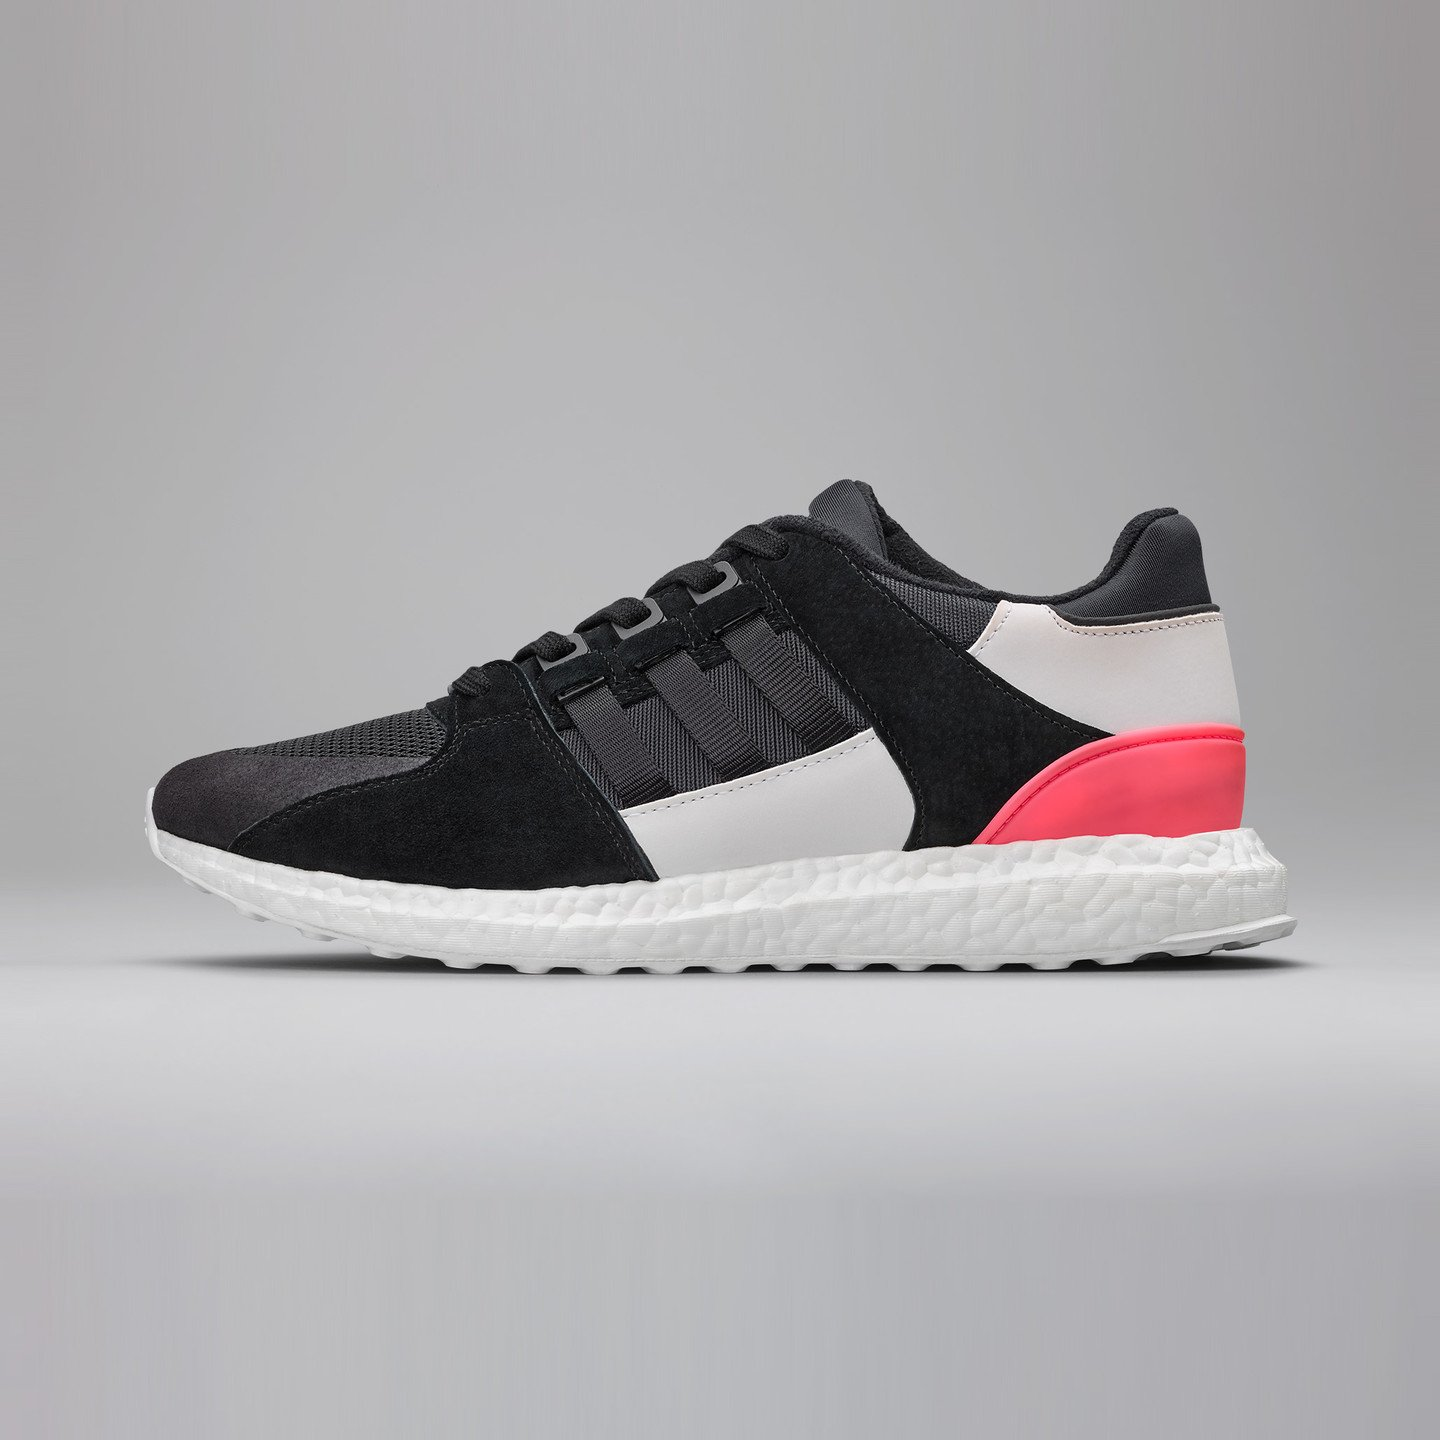 Adidas EQT Support Ultra Black / Turbo Red BB1237-45.33